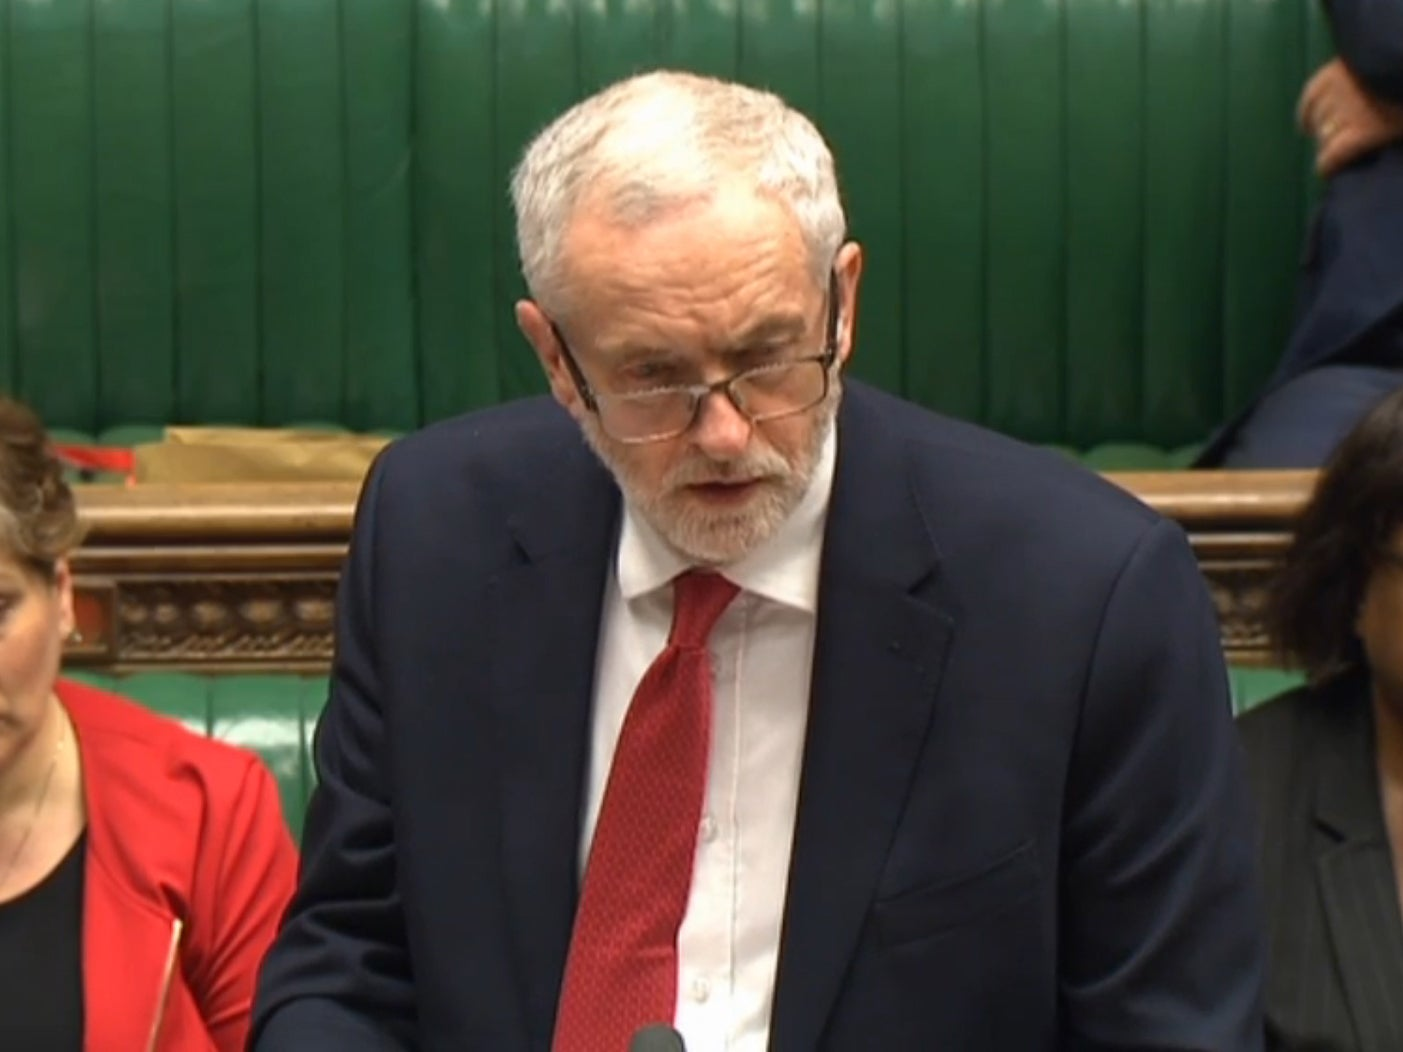 Corbyn understands foreign policy – he proved it yesterday with Russia and he's proven it in the past